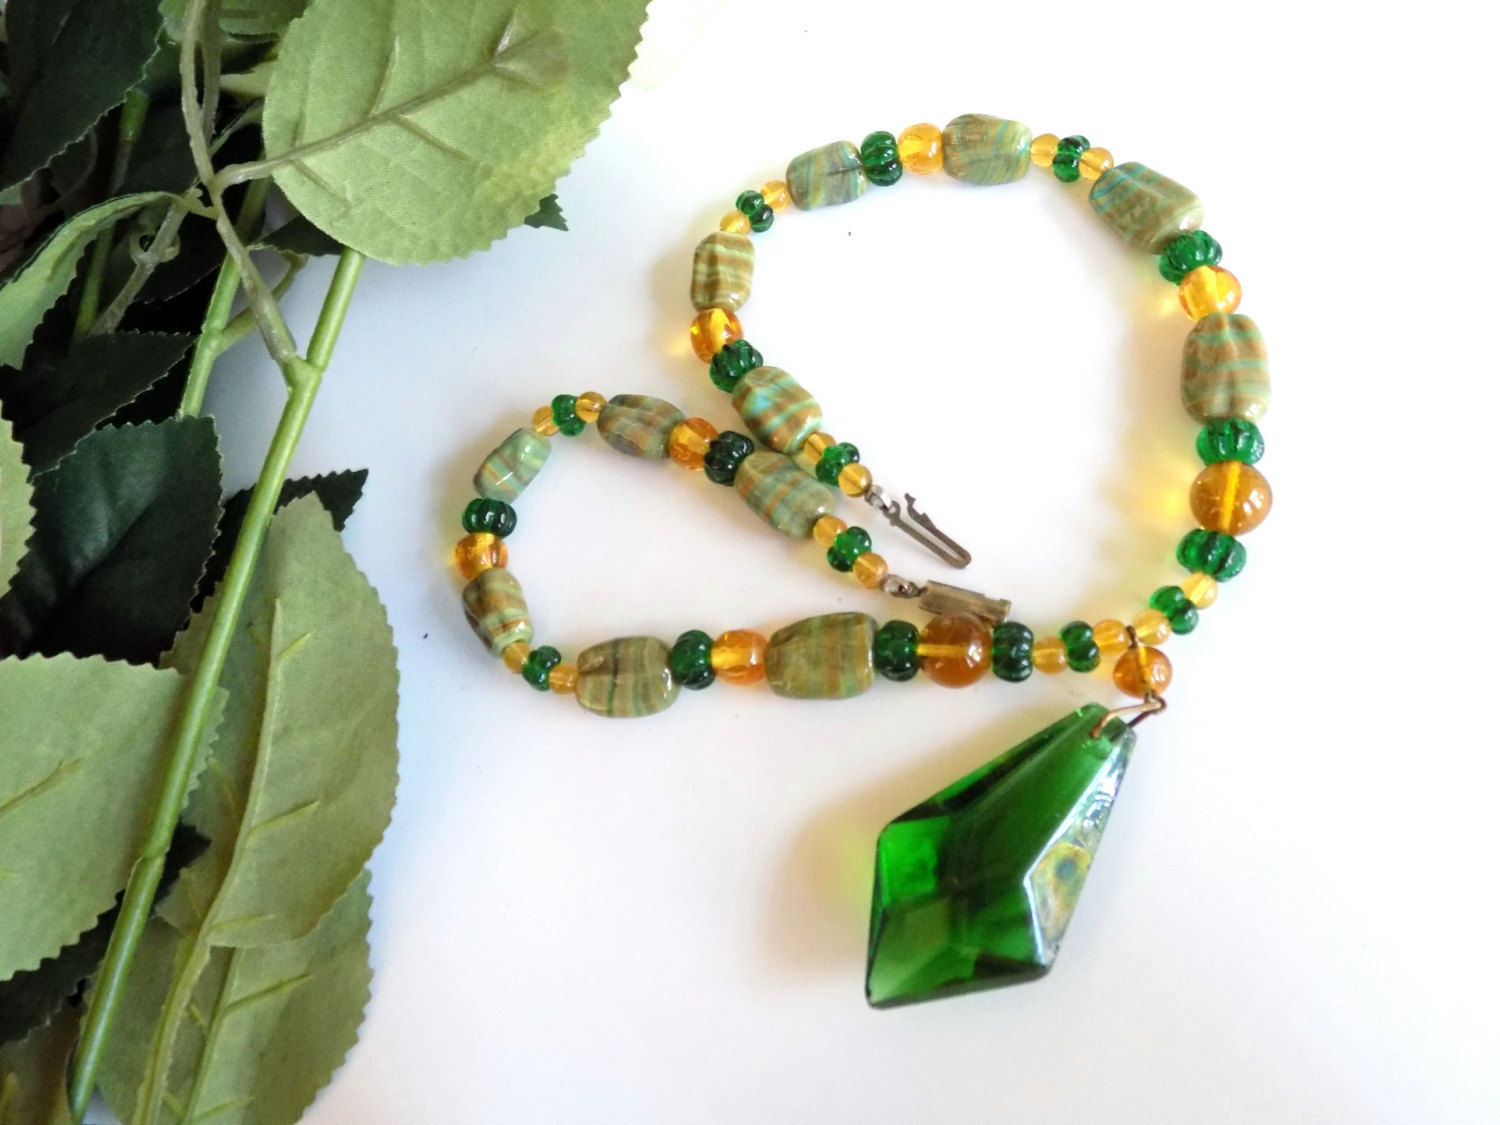 Vintage Glass Beaded Necklace Green & Gold Glass Beads Striped Beads Focal Glass image 5